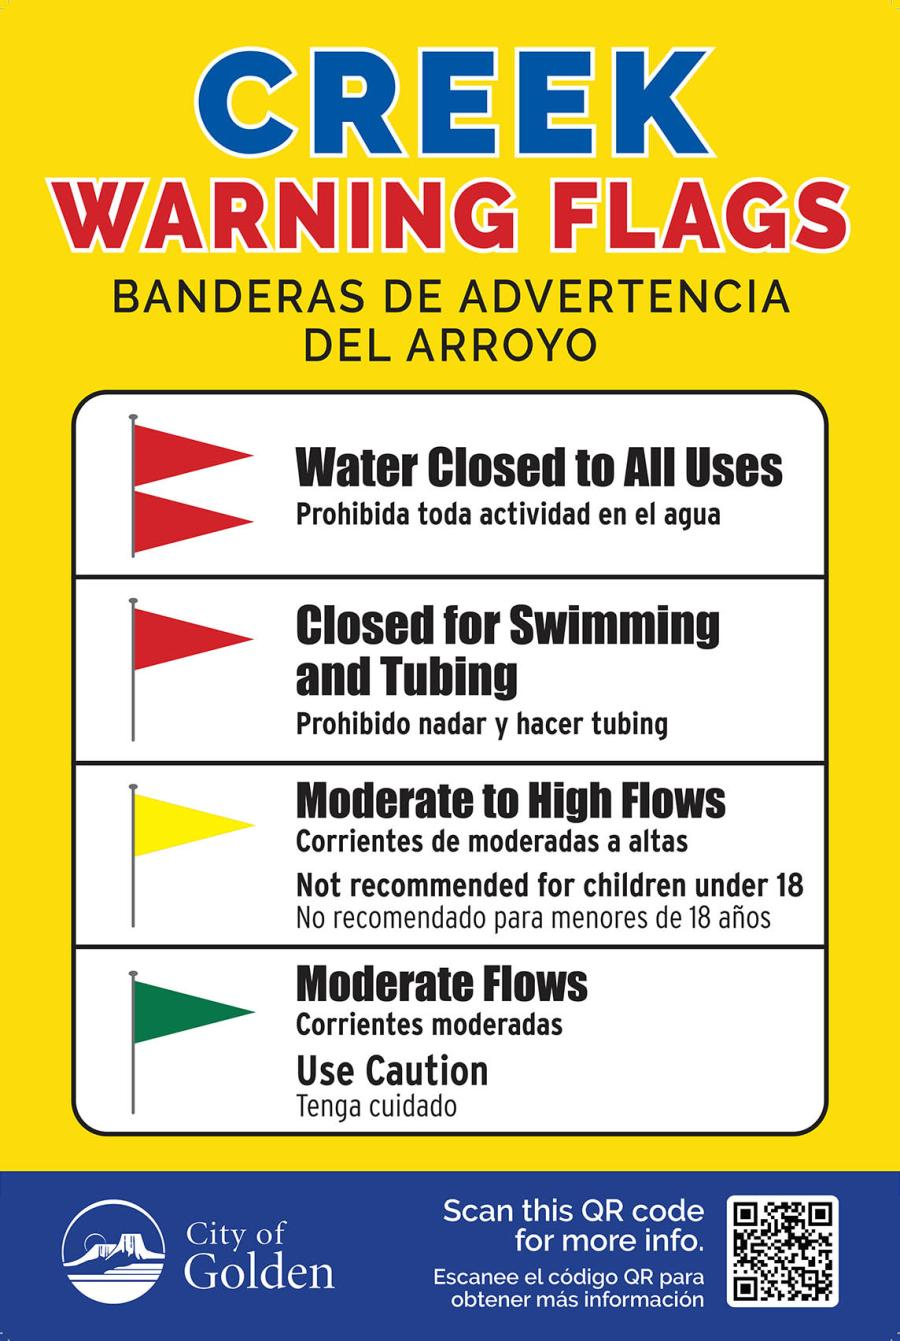 Creek warning flags indicate safety of creek for recreators, from red flags, which closes the creek, to yellow (use caution), and green (creek is open, flows are moderate, use caution).